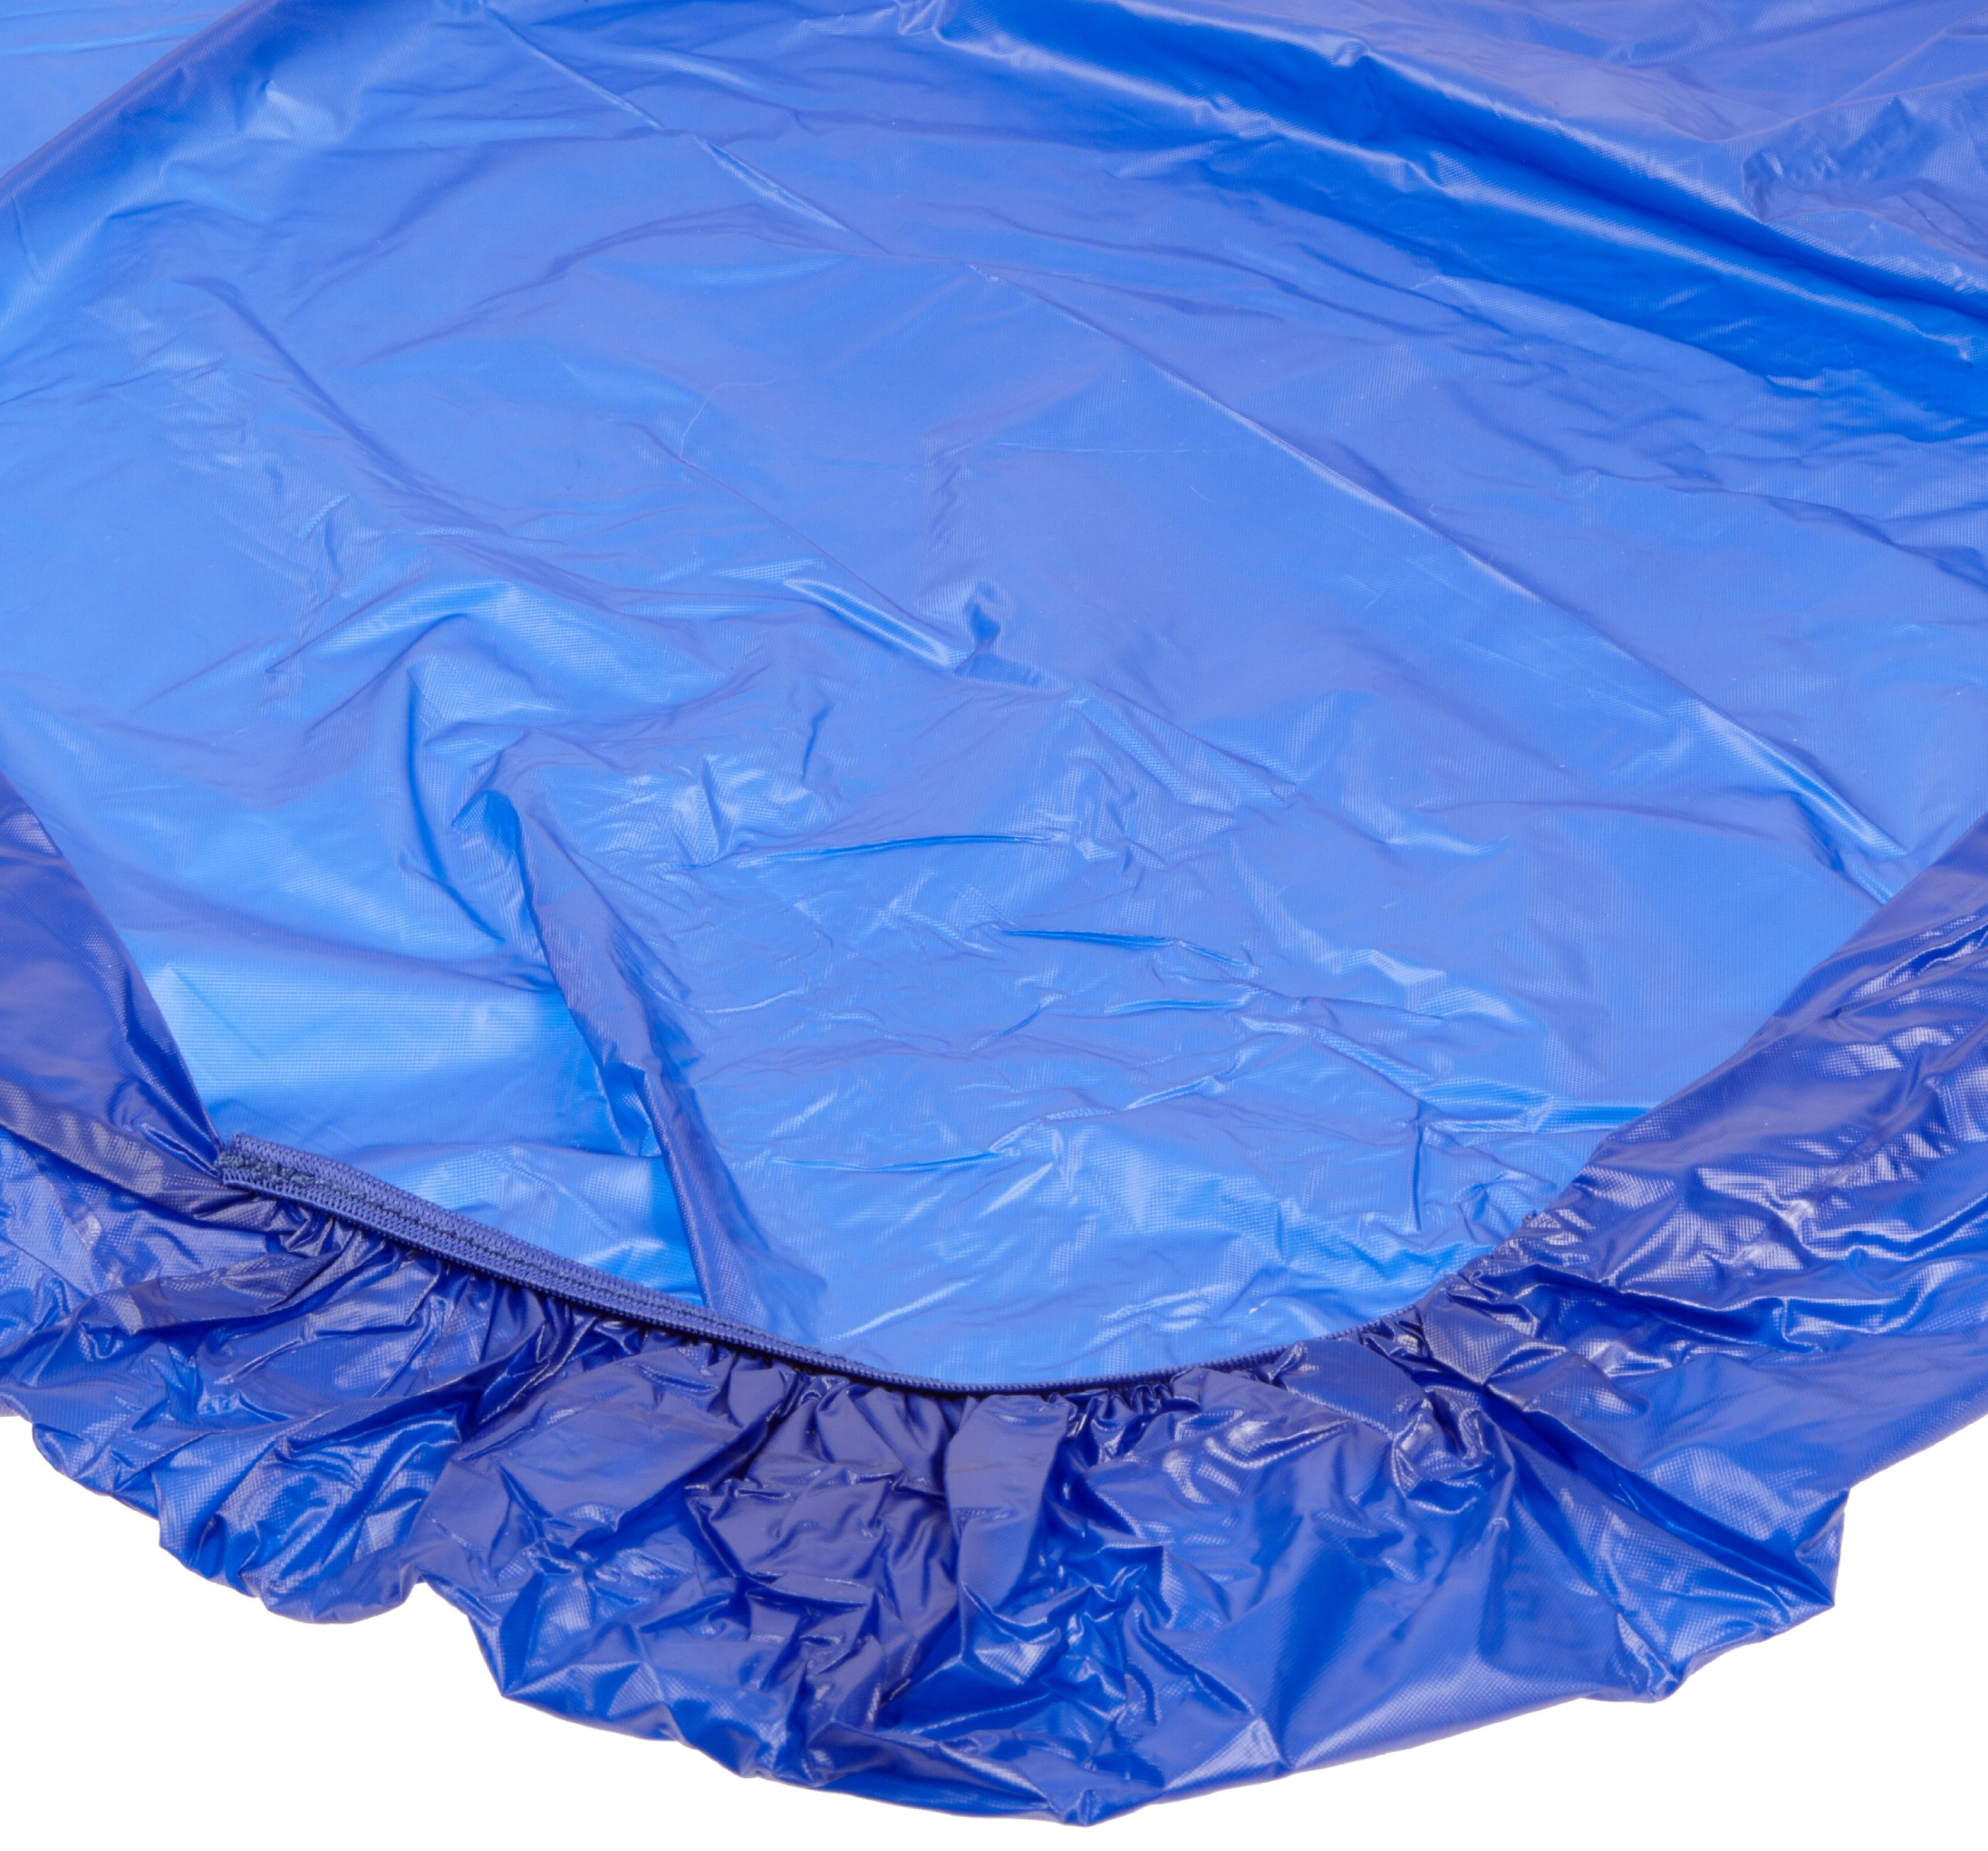 Kwik-Cover 3096PK-B 30'' X 96'' Kwik-Cover - Blue Fitted Table Cover, (Pack of 50) by Kwik-Covers